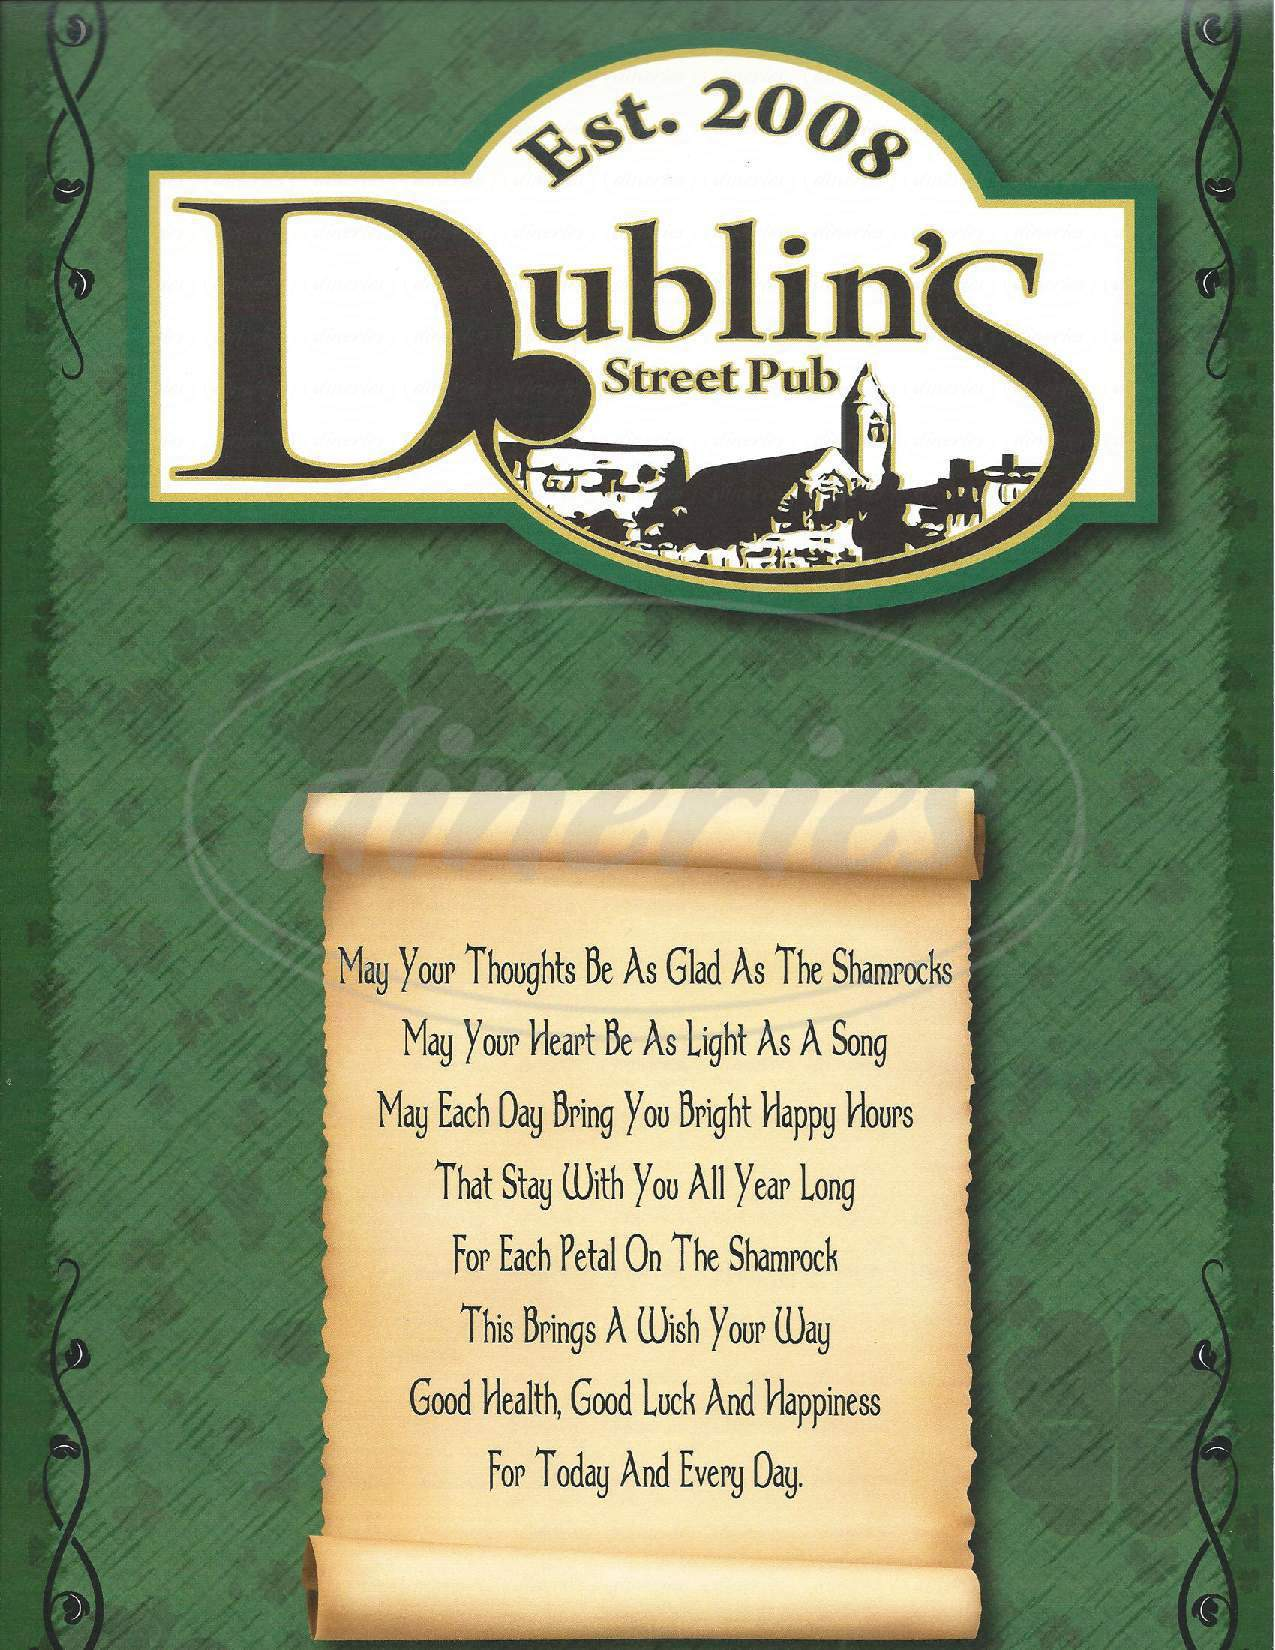 menu for Dublin's Street Pub